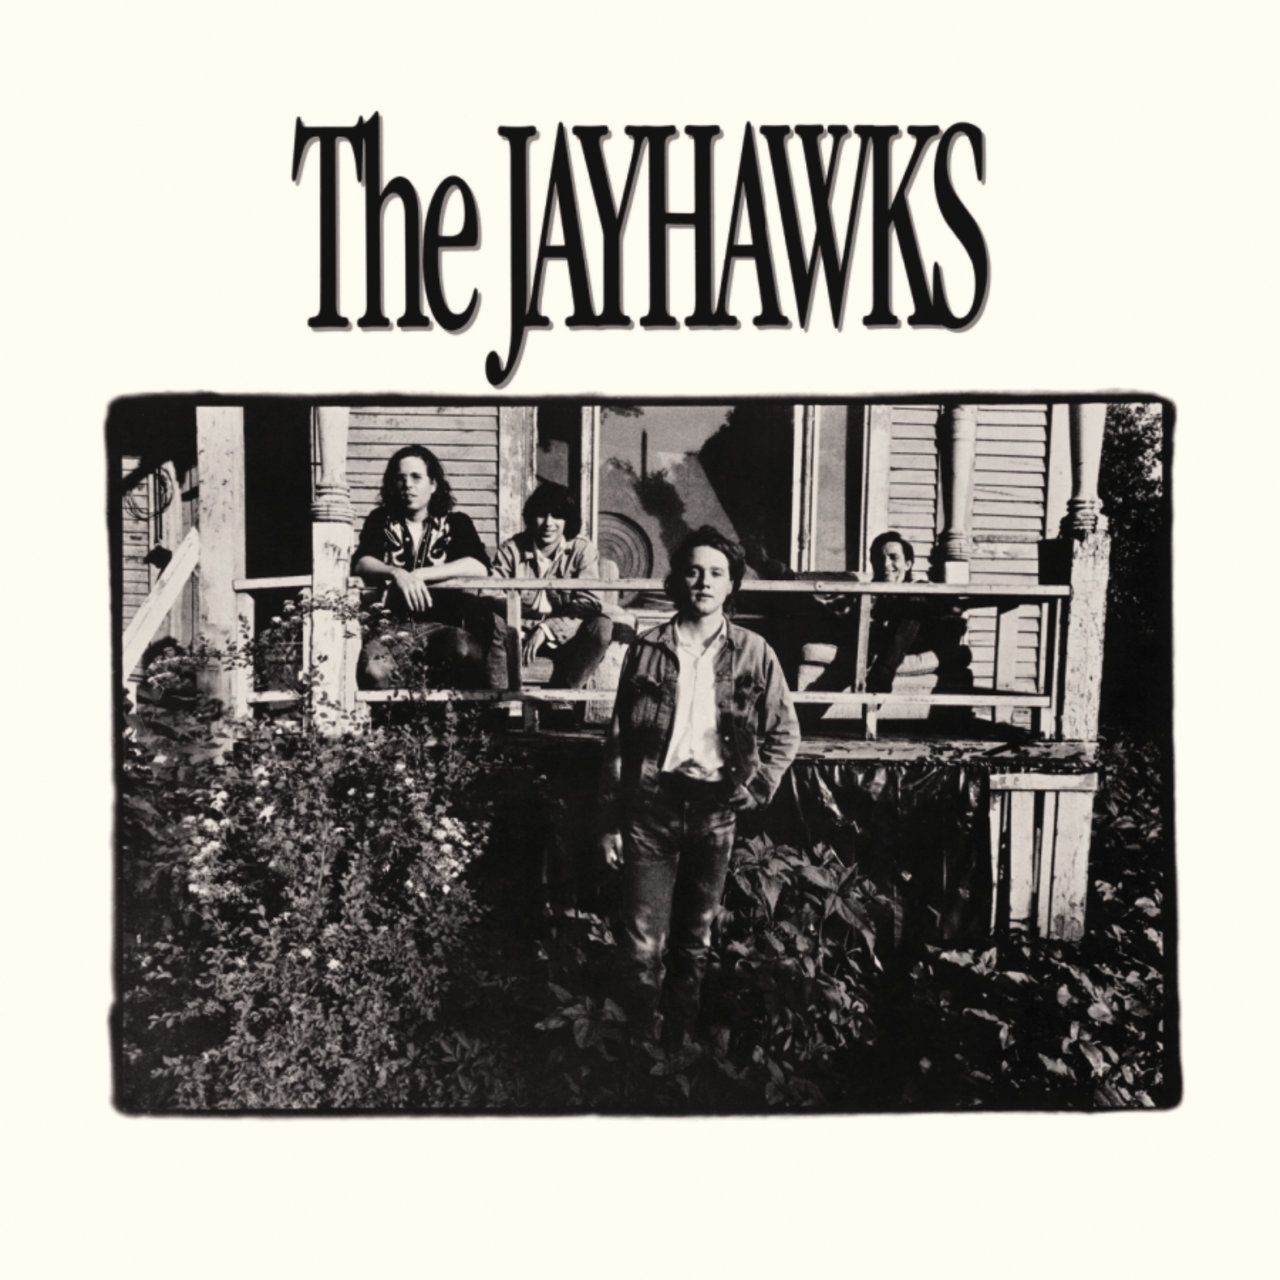 The Jayhawks (aka. The Bunkhouse Album)